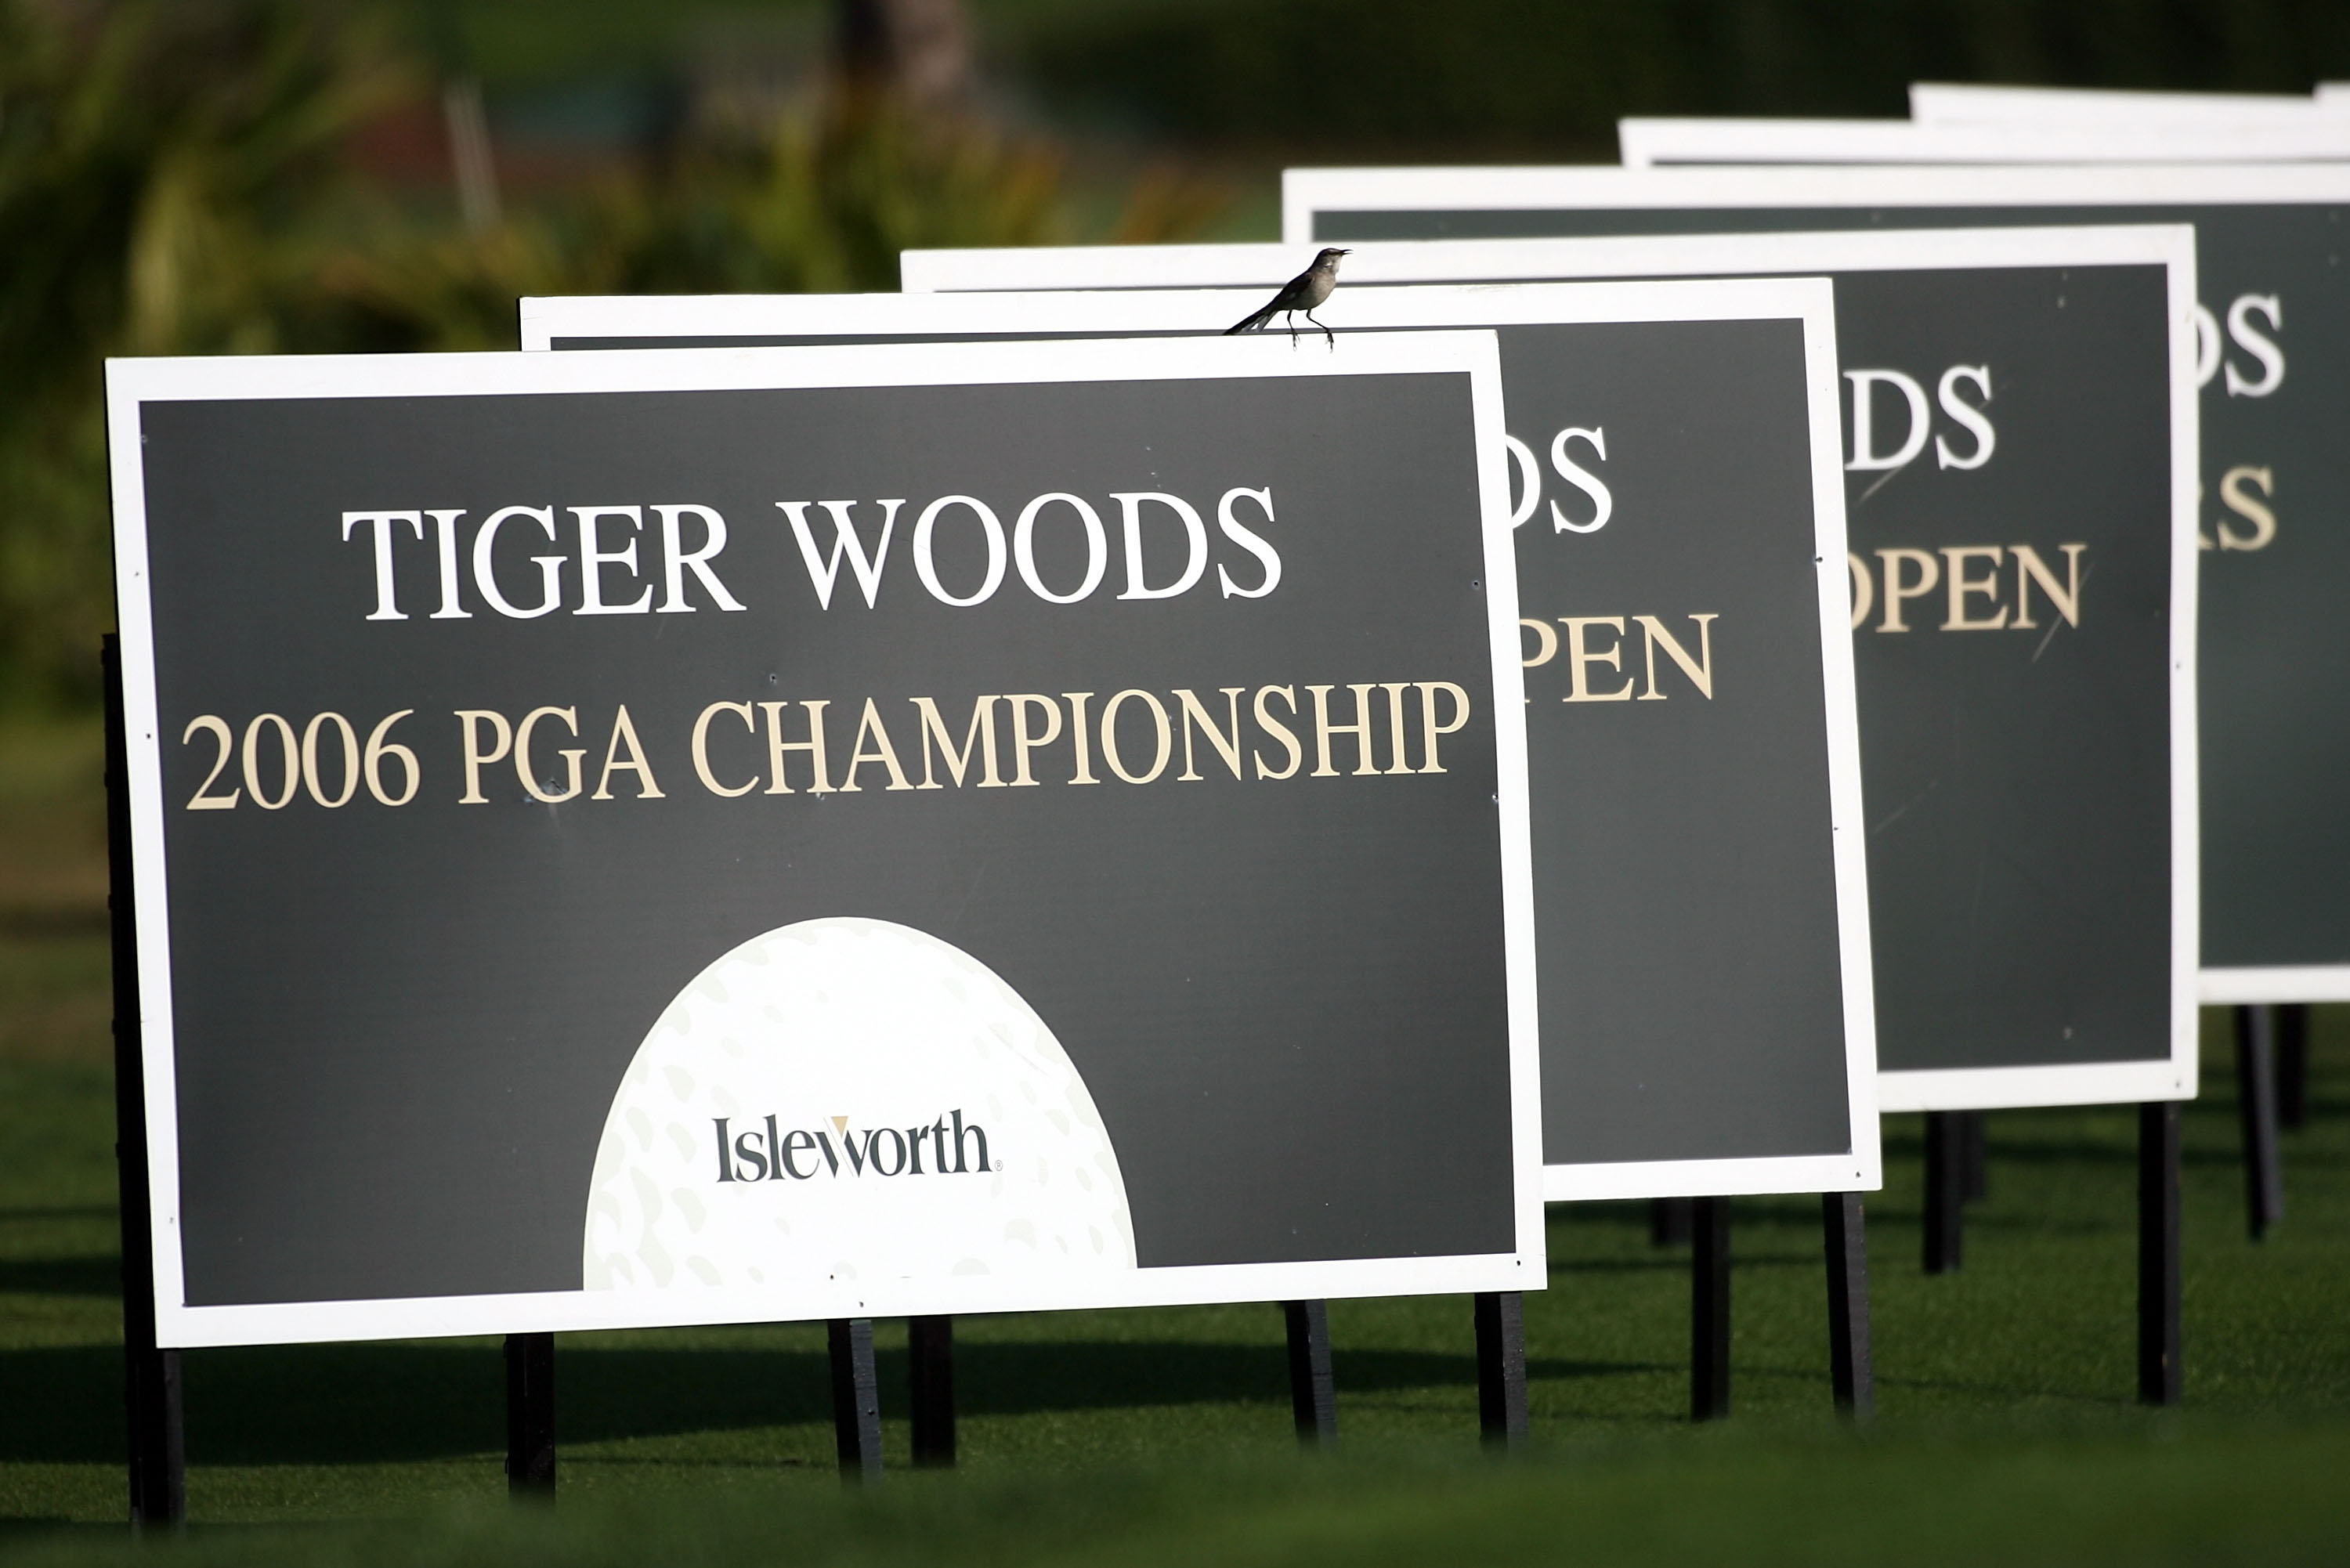 ORLANDO, FL - MARCH 26:  The major championships won by Tiger Woods are noted on these boards at the Tavistock Cup at Lake Nona March 26, 2007 in Orlando, Florida.  (Photo by Marc Serota/Getty Images)